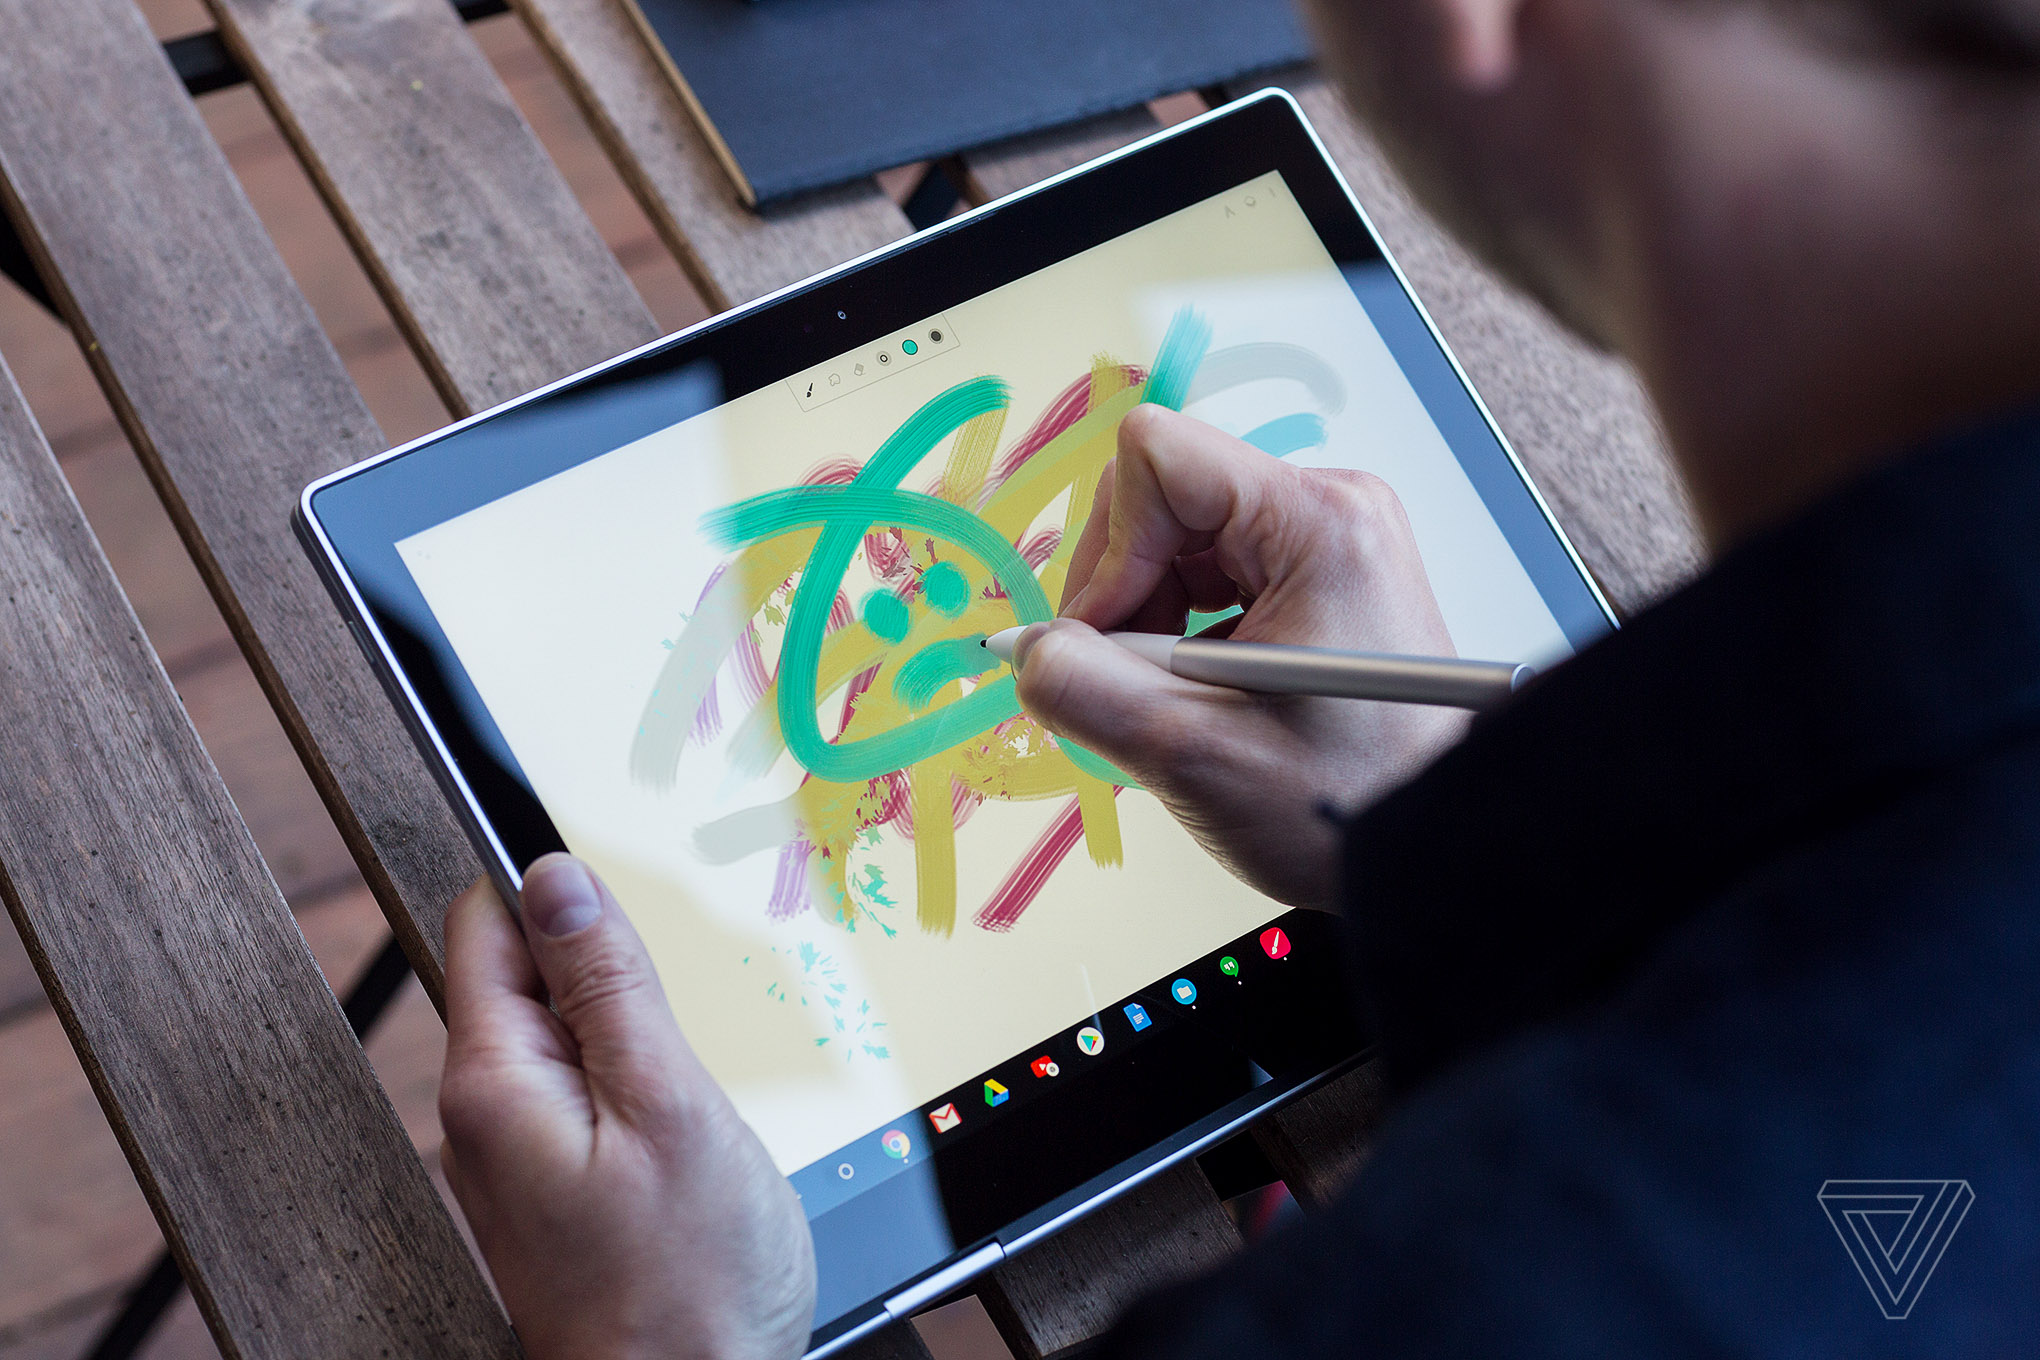 Google Announces High End Pixelbook Laptop With A Stylus